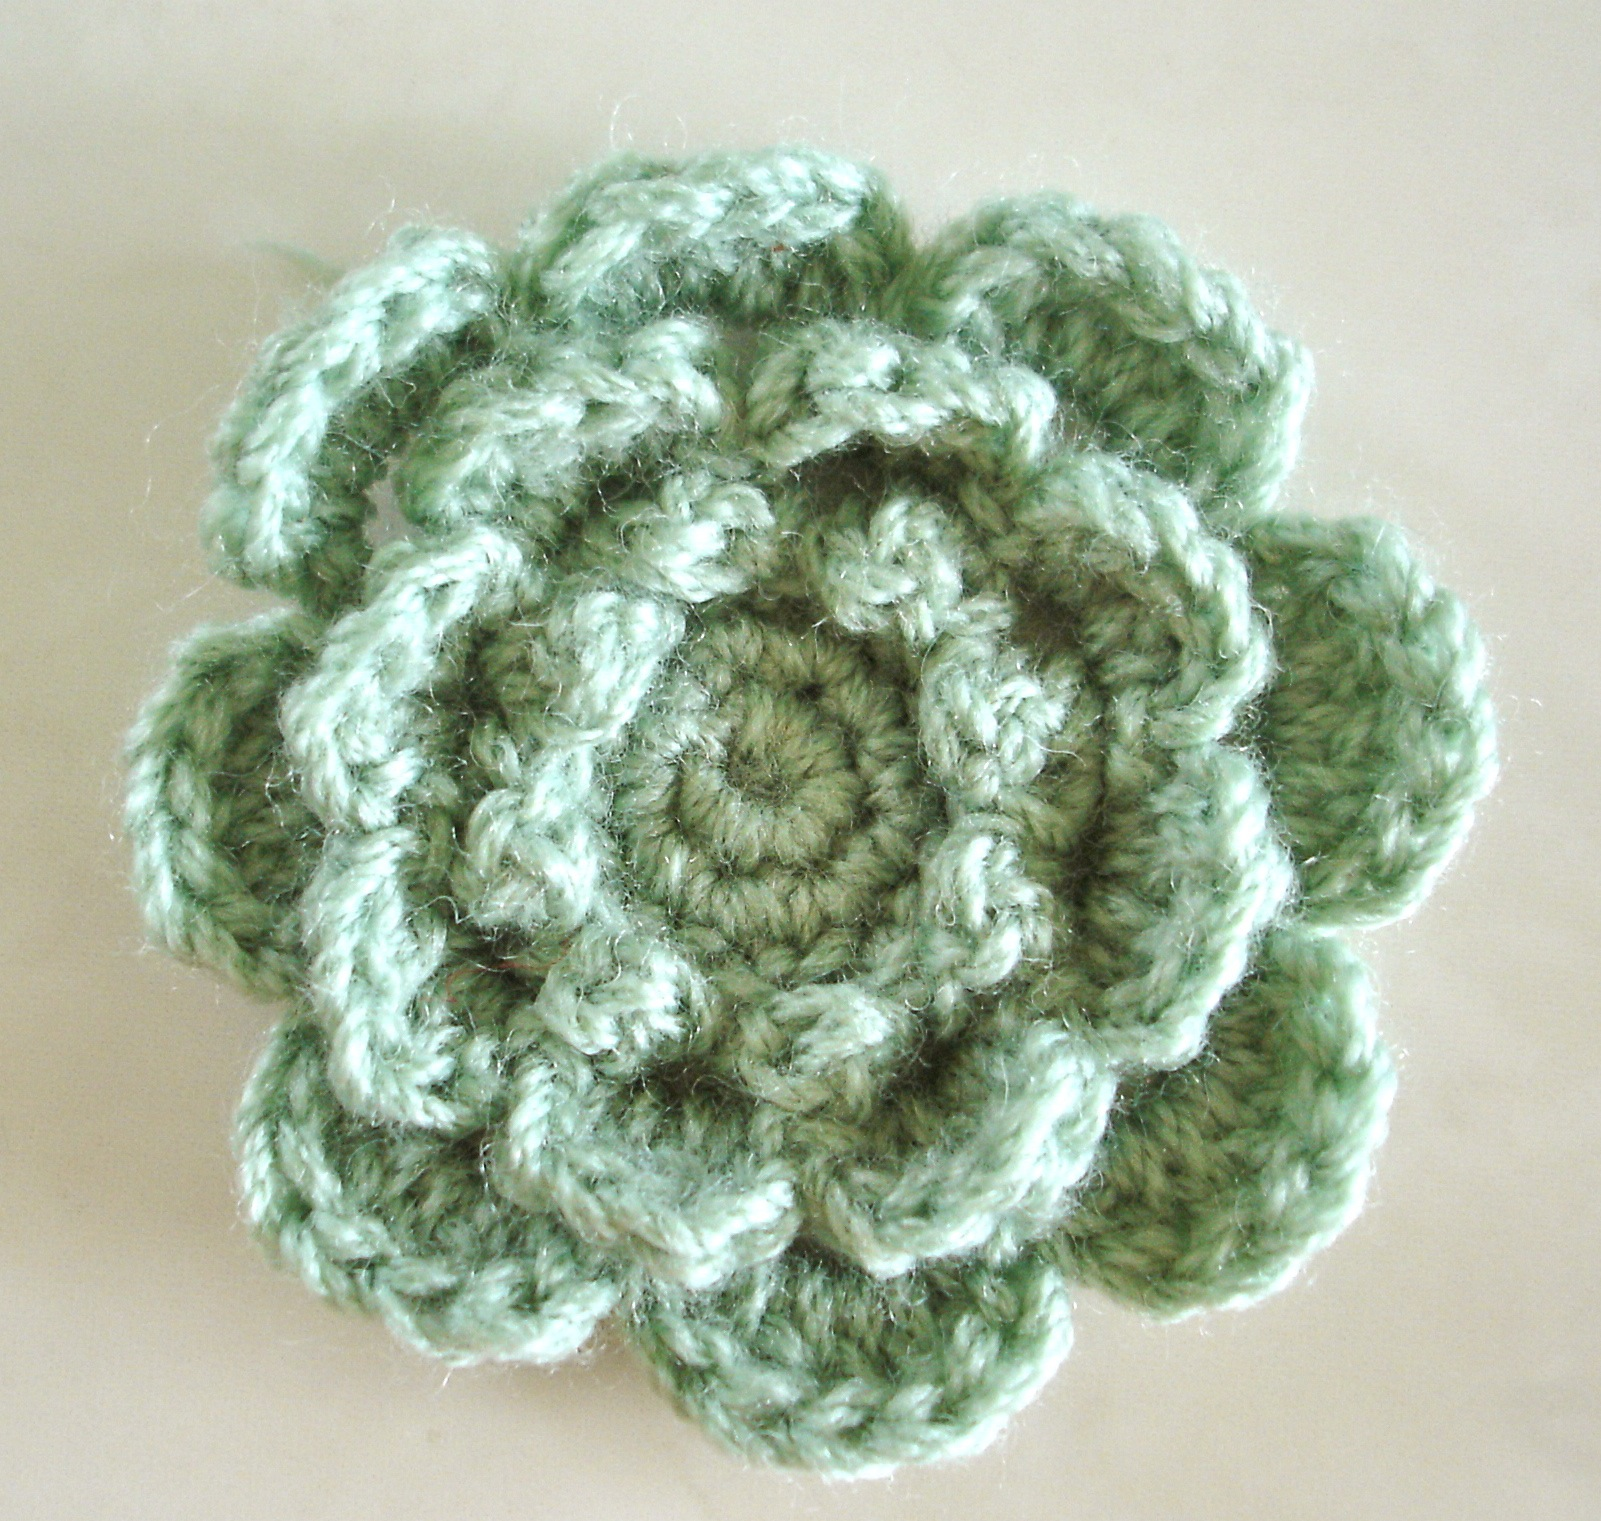 CROCHETED FLOWERS PATTERNS - Crochet and Knitting Patterns